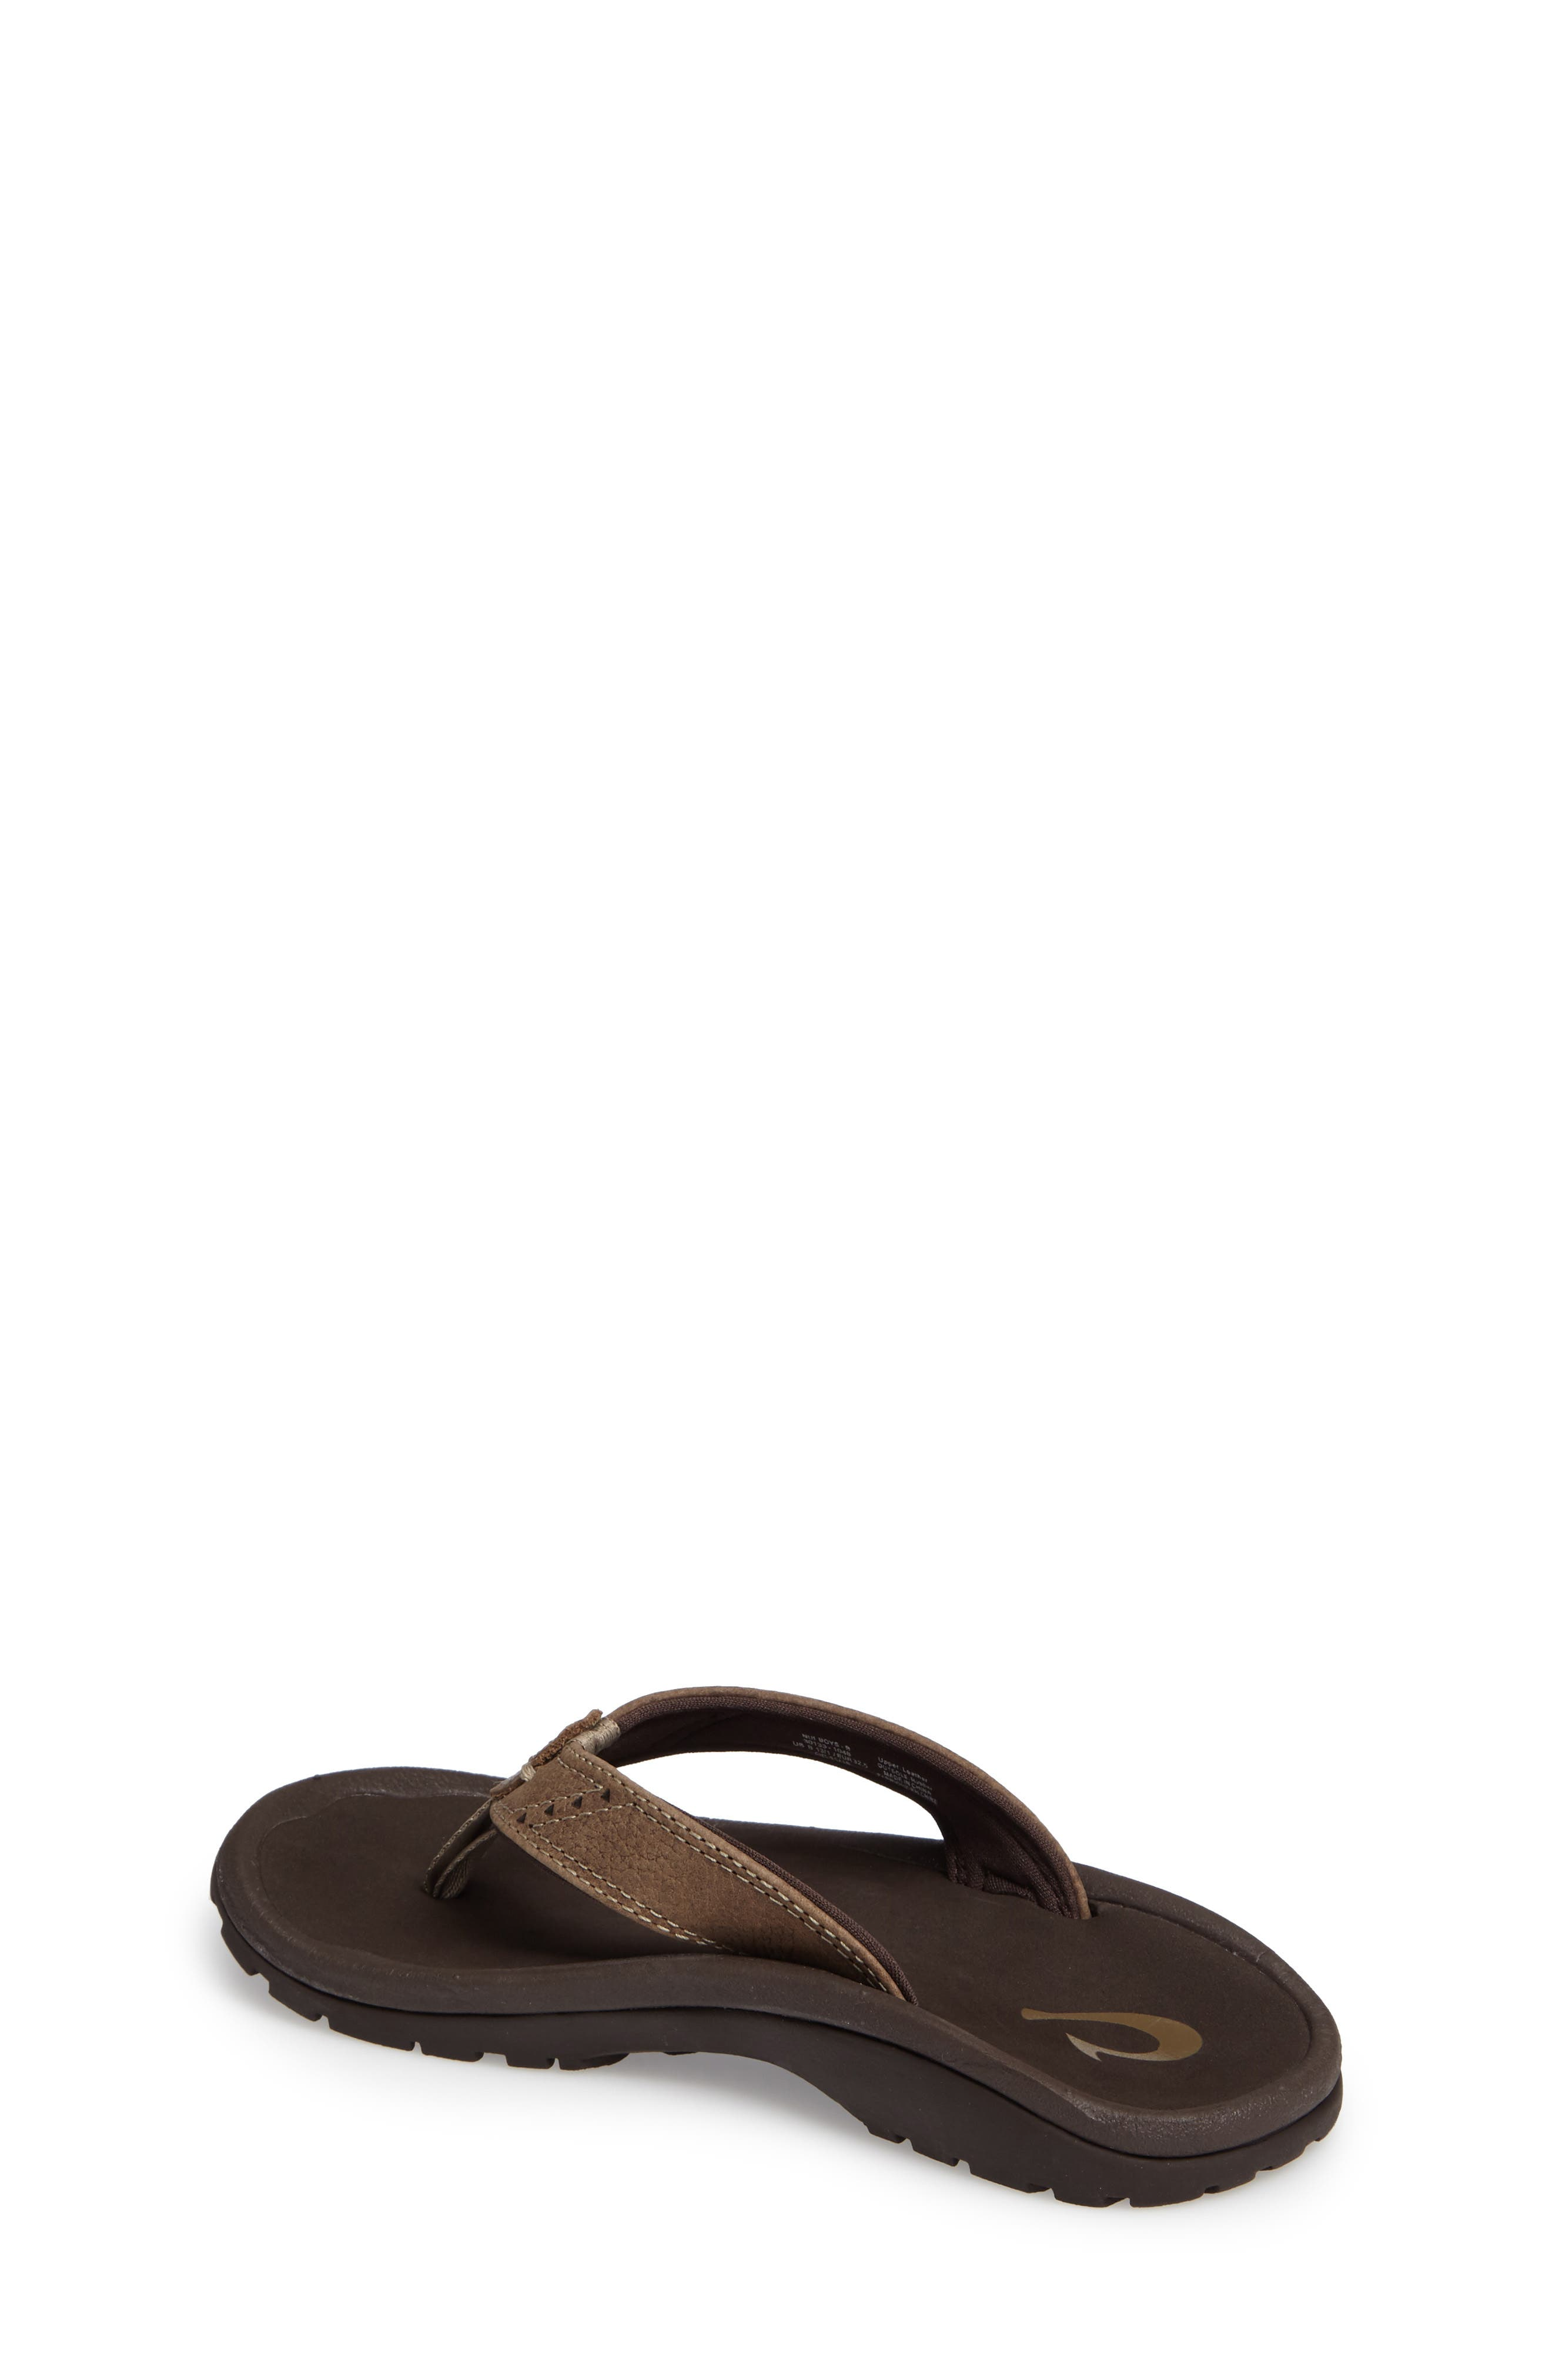 Nui Leather Flip Flop,                             Alternate thumbnail 2, color,                             Clay/ Dark Java